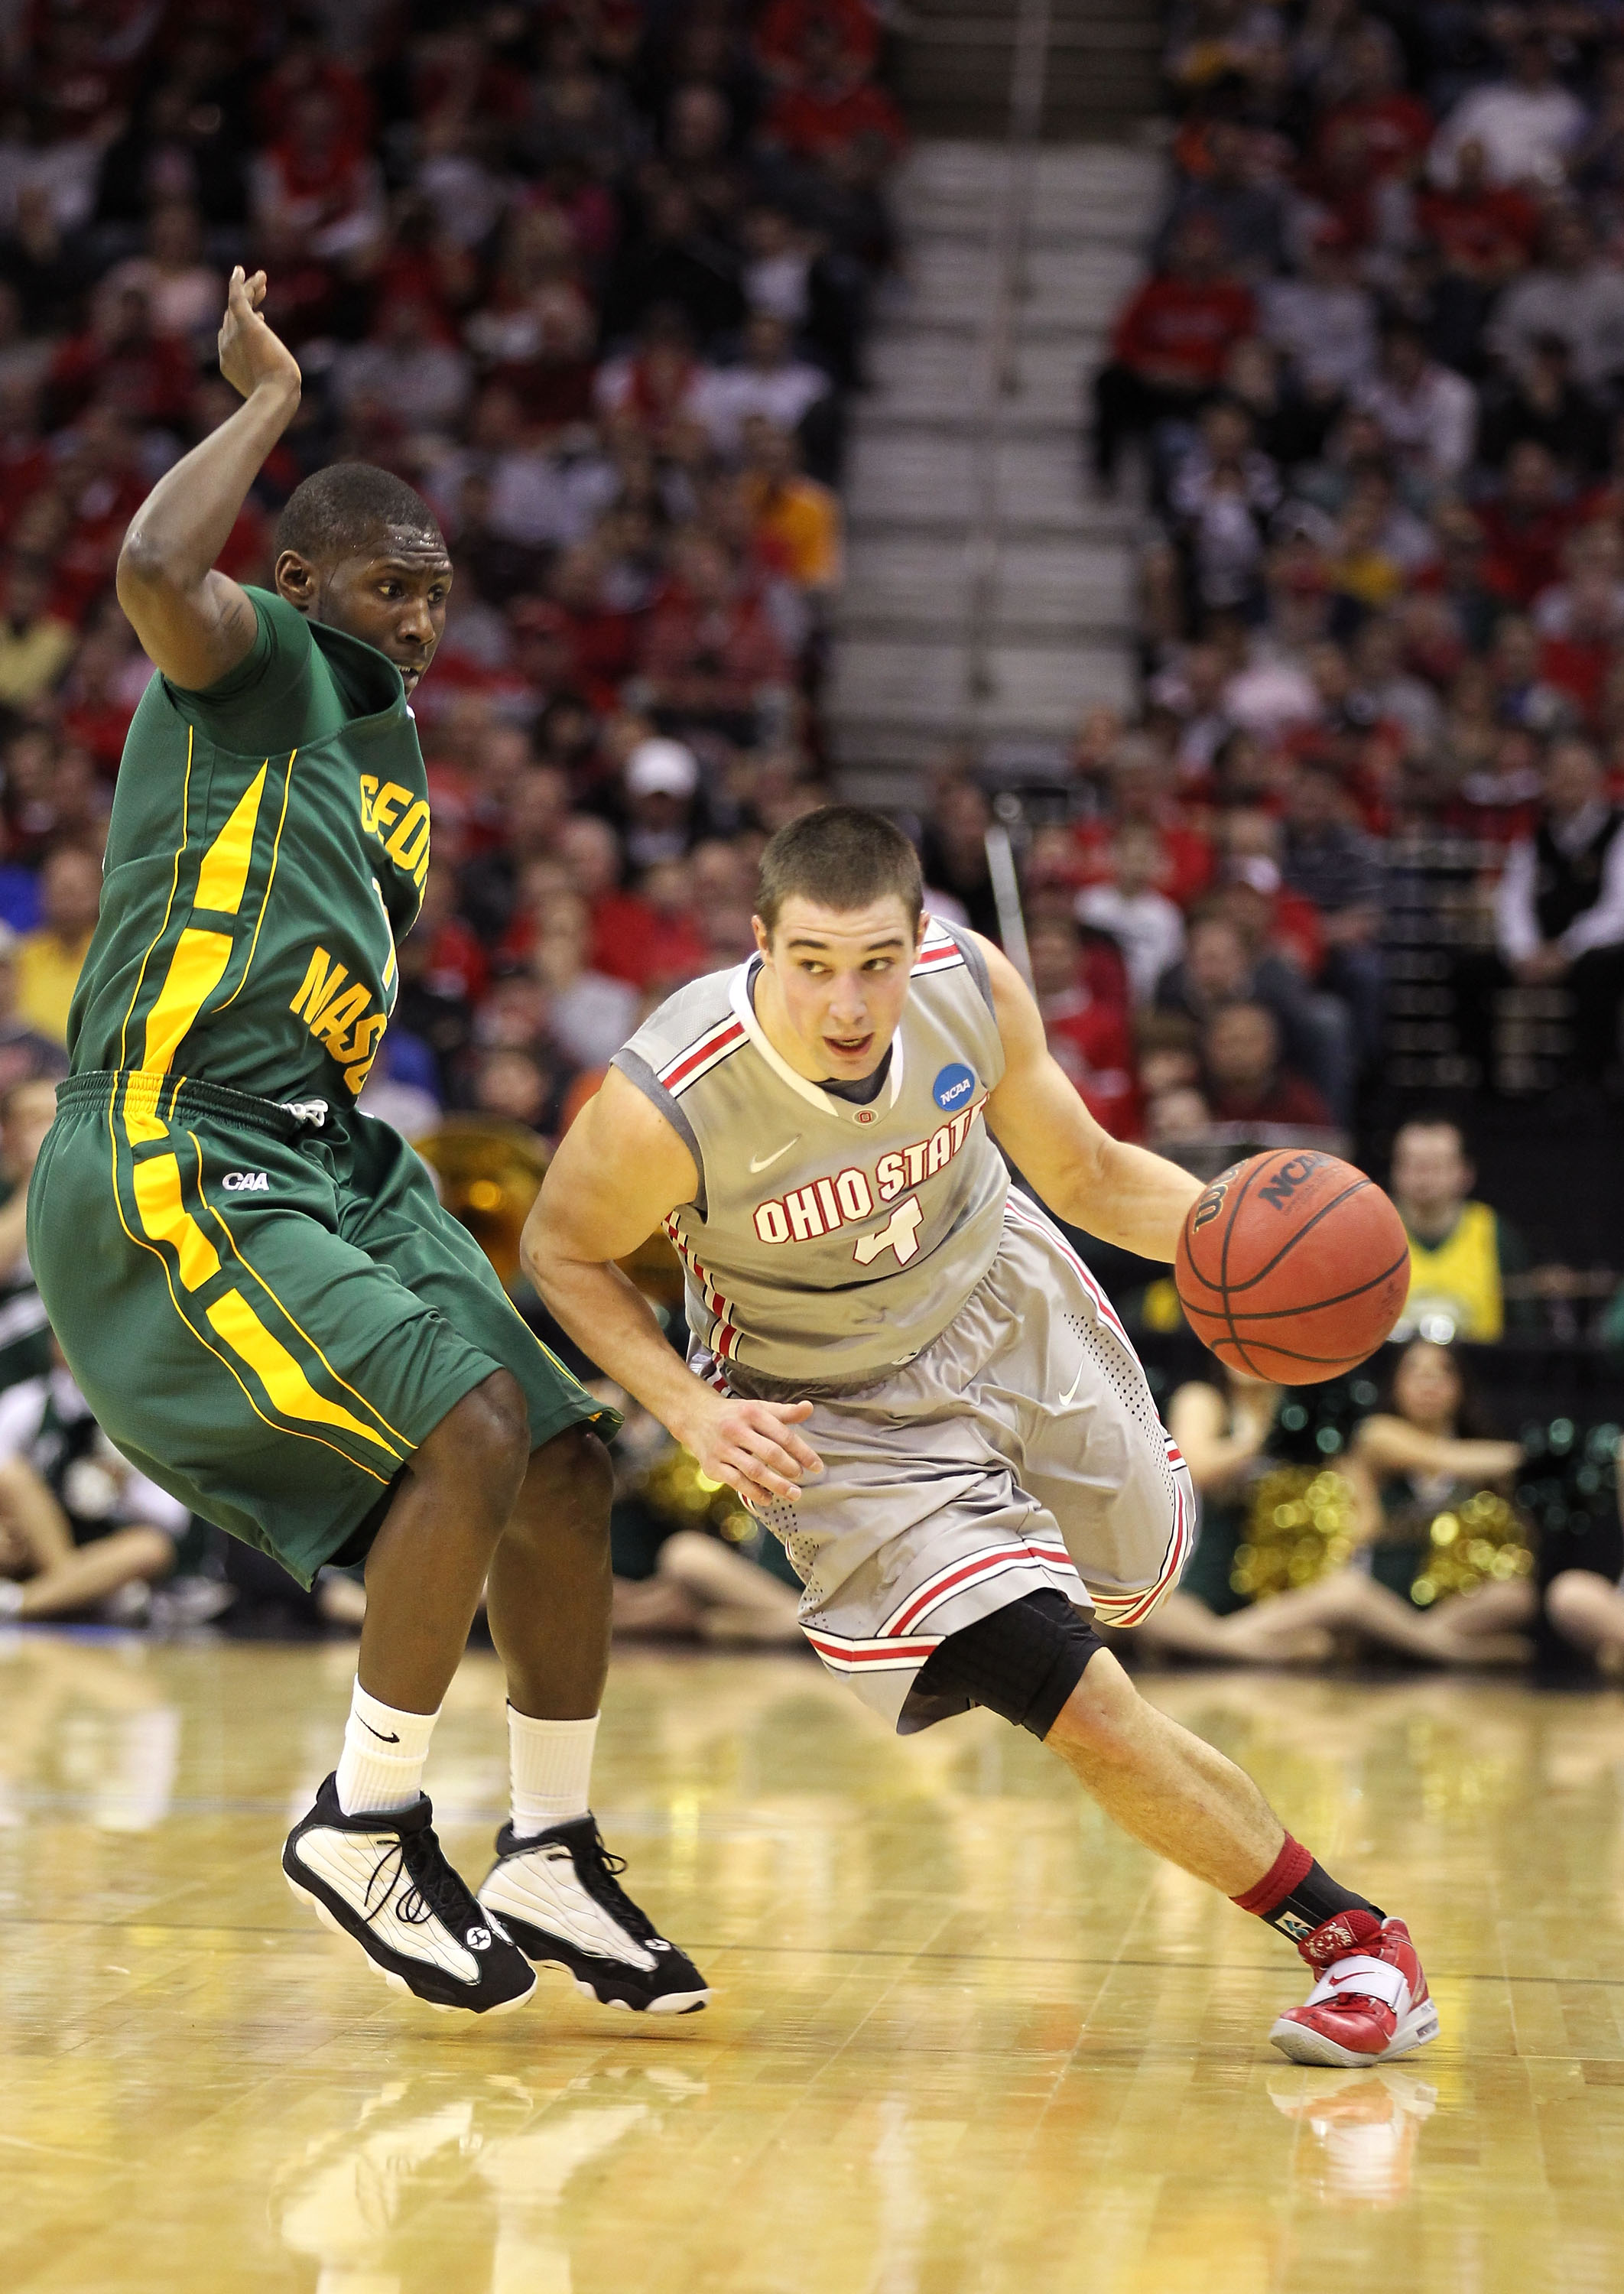 CLEVELAND, OH - MARCH 20: Aaron Craft #4 of the Ohio State Buckeyes dribbles around Vertrail Vaughns #11 of the George Mason Patriots during the third of the 2011 NCAA men's basketball tournament at Quicken Loans Arena on March 20, 2011 in Cleveland, Ohio